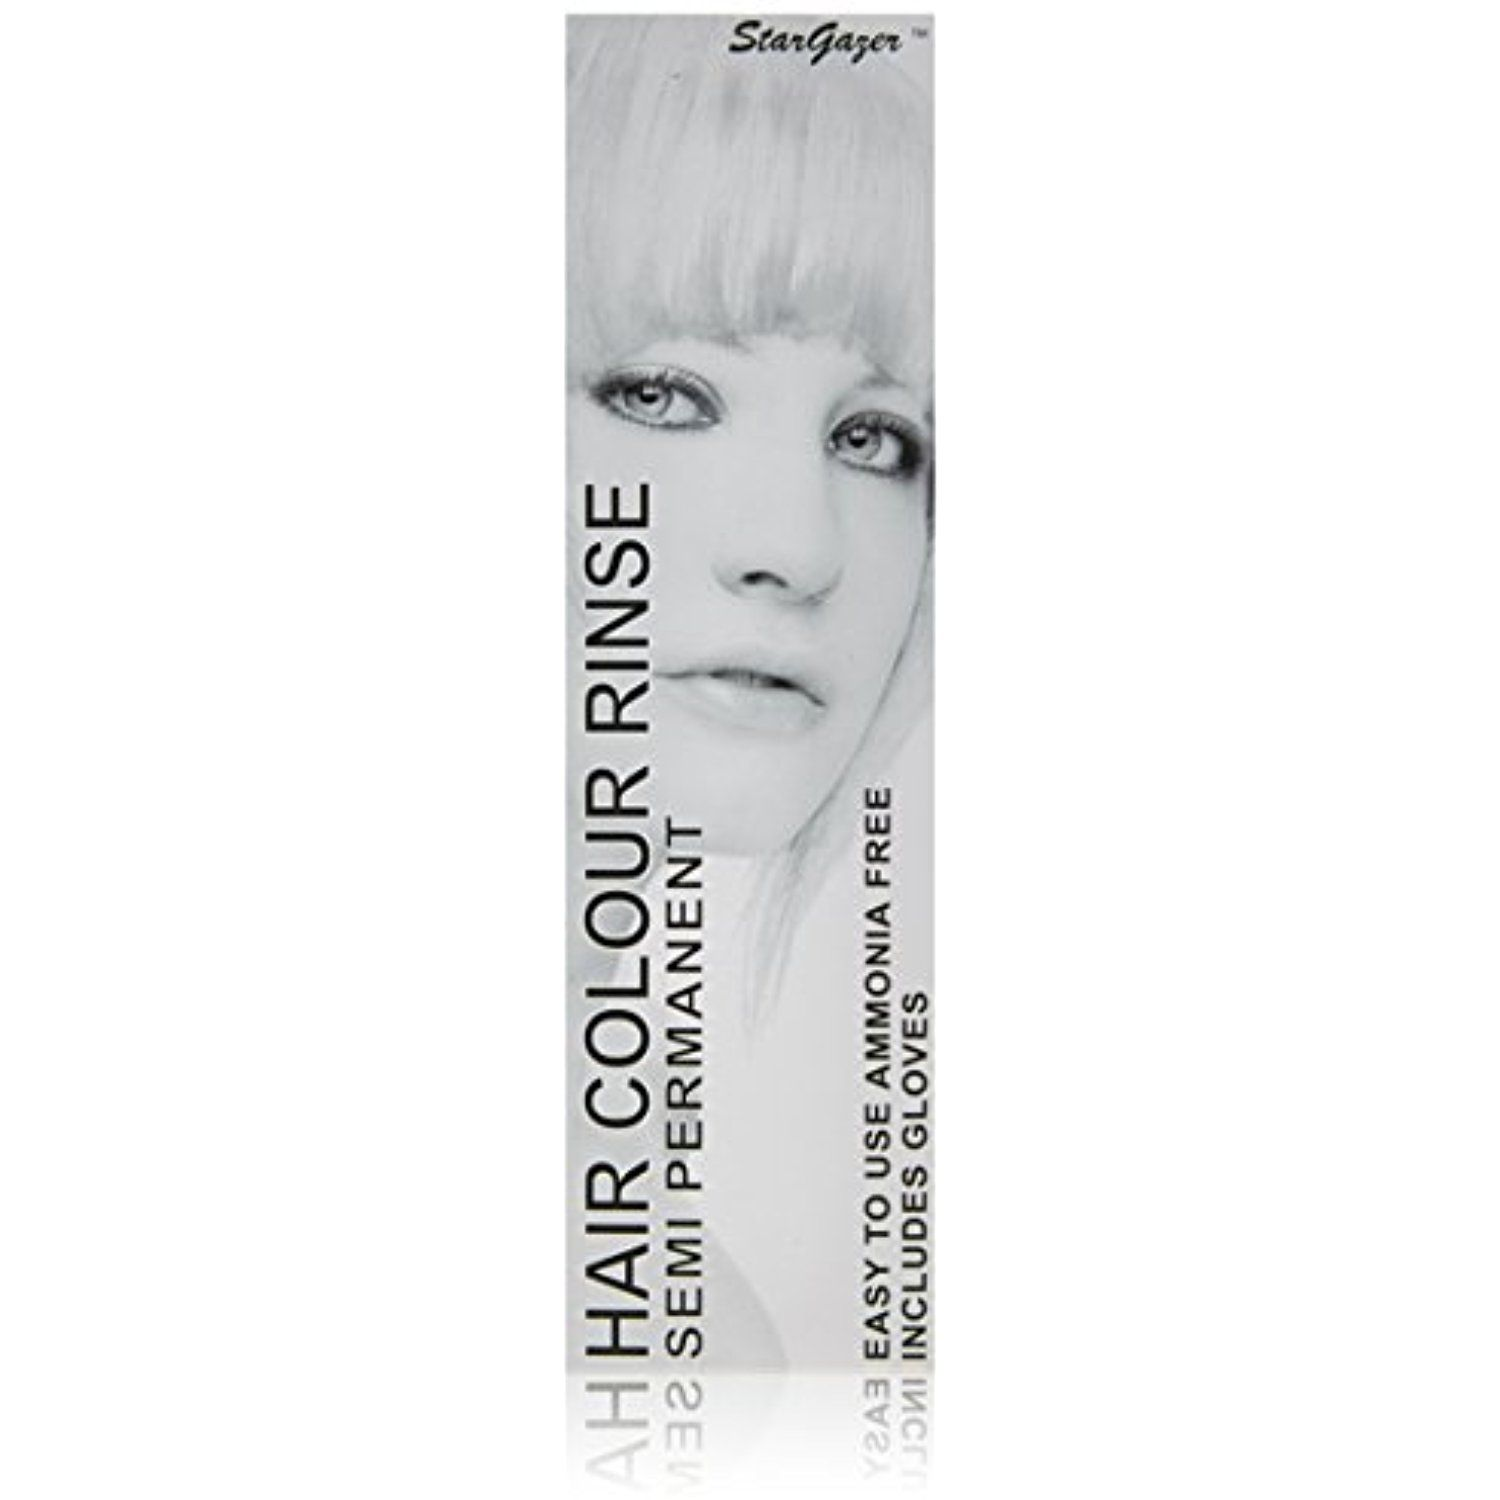 Stargazer Semi Permanent Hair Color White Amonia Free Hair Dye